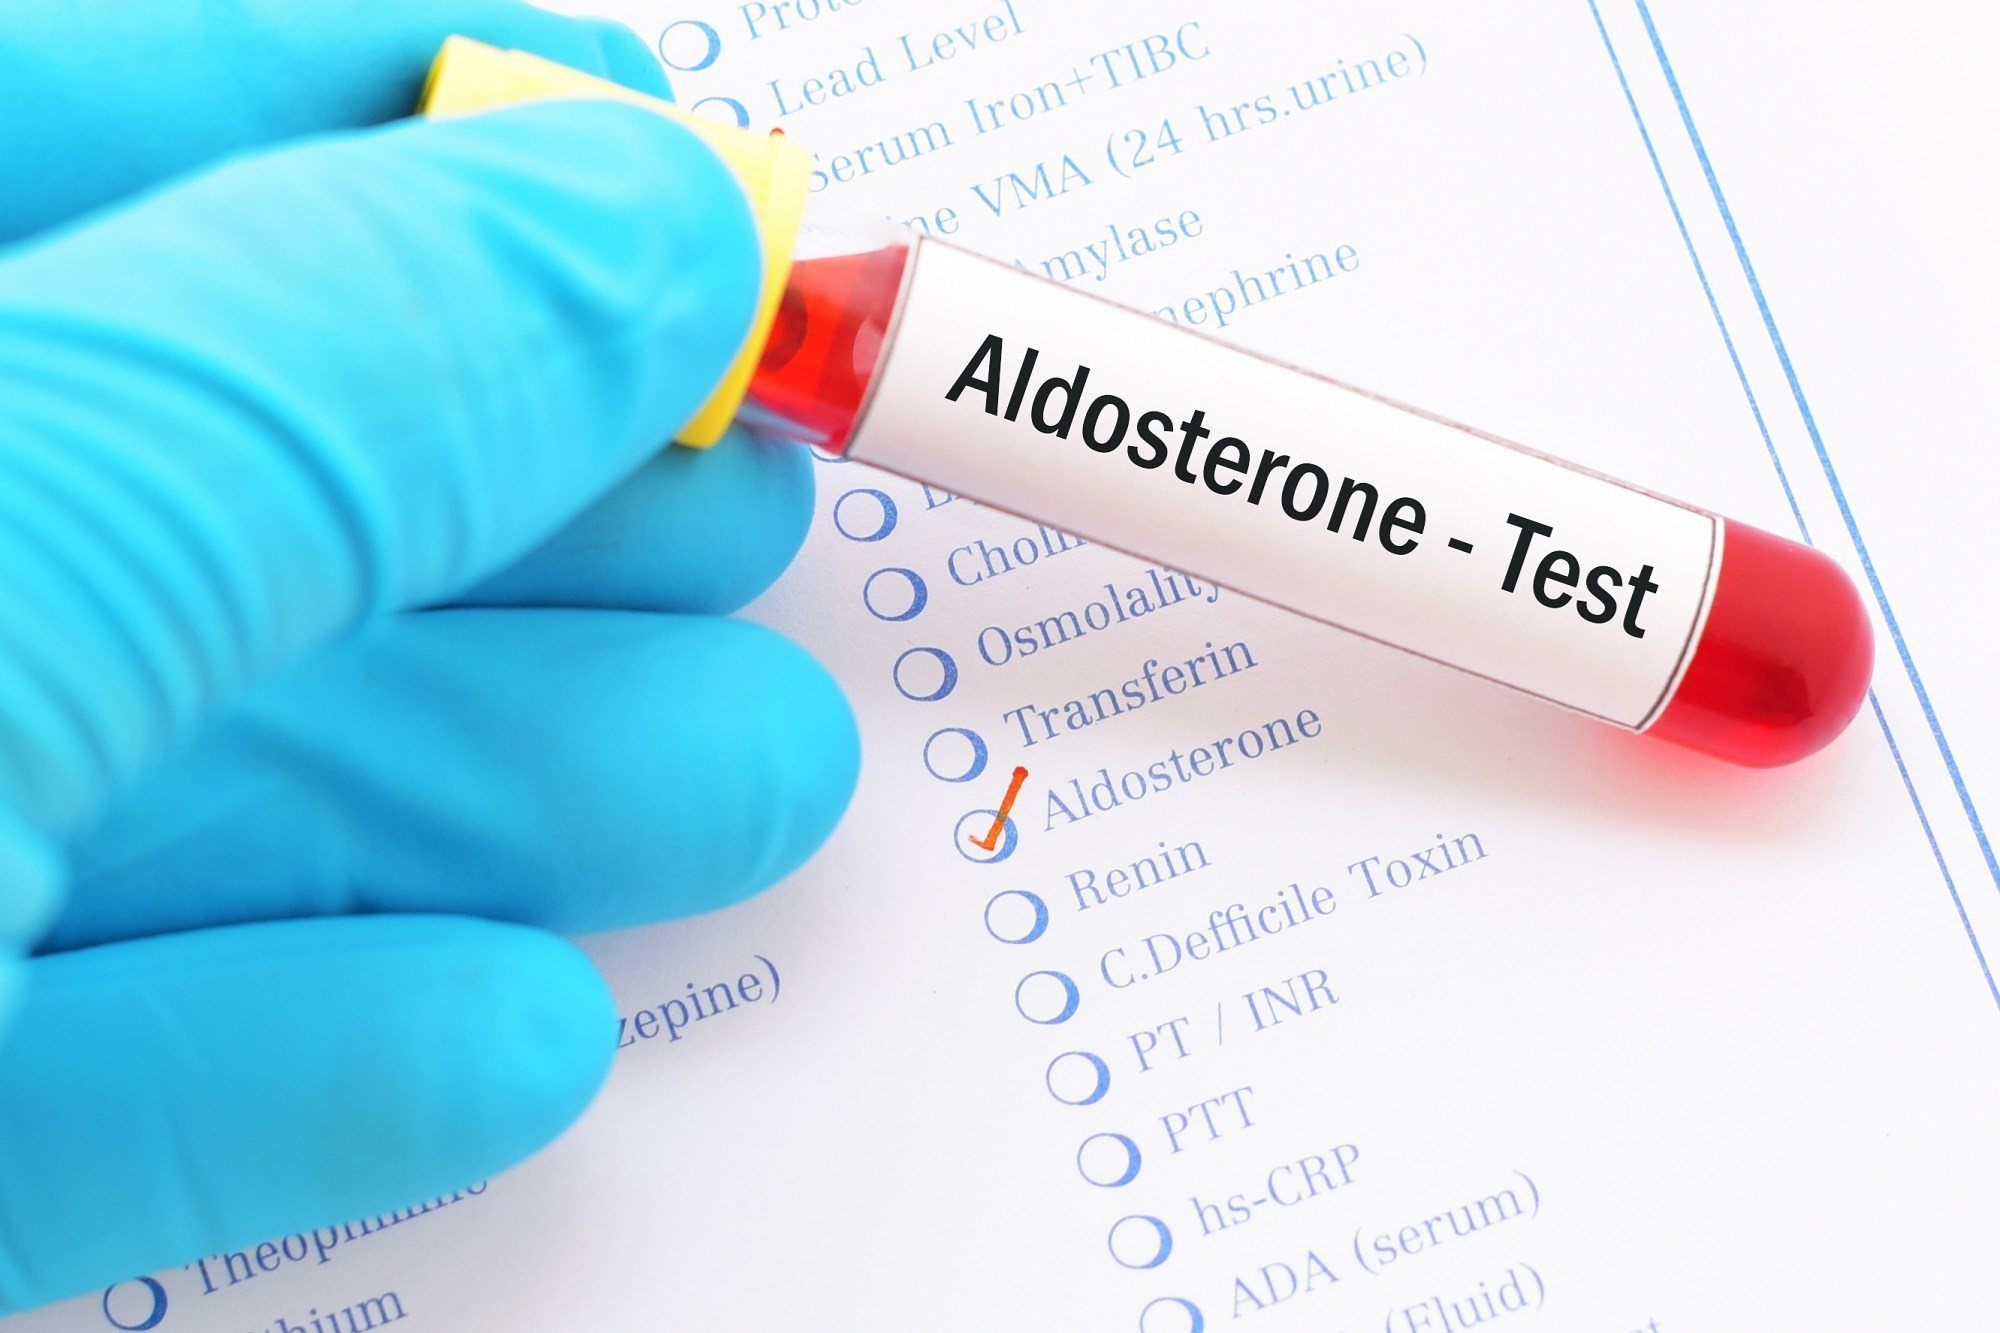 Higher levels of aldosterone are associated with insulin resistance and incident type 2 diabetes among multiethnic individuals.